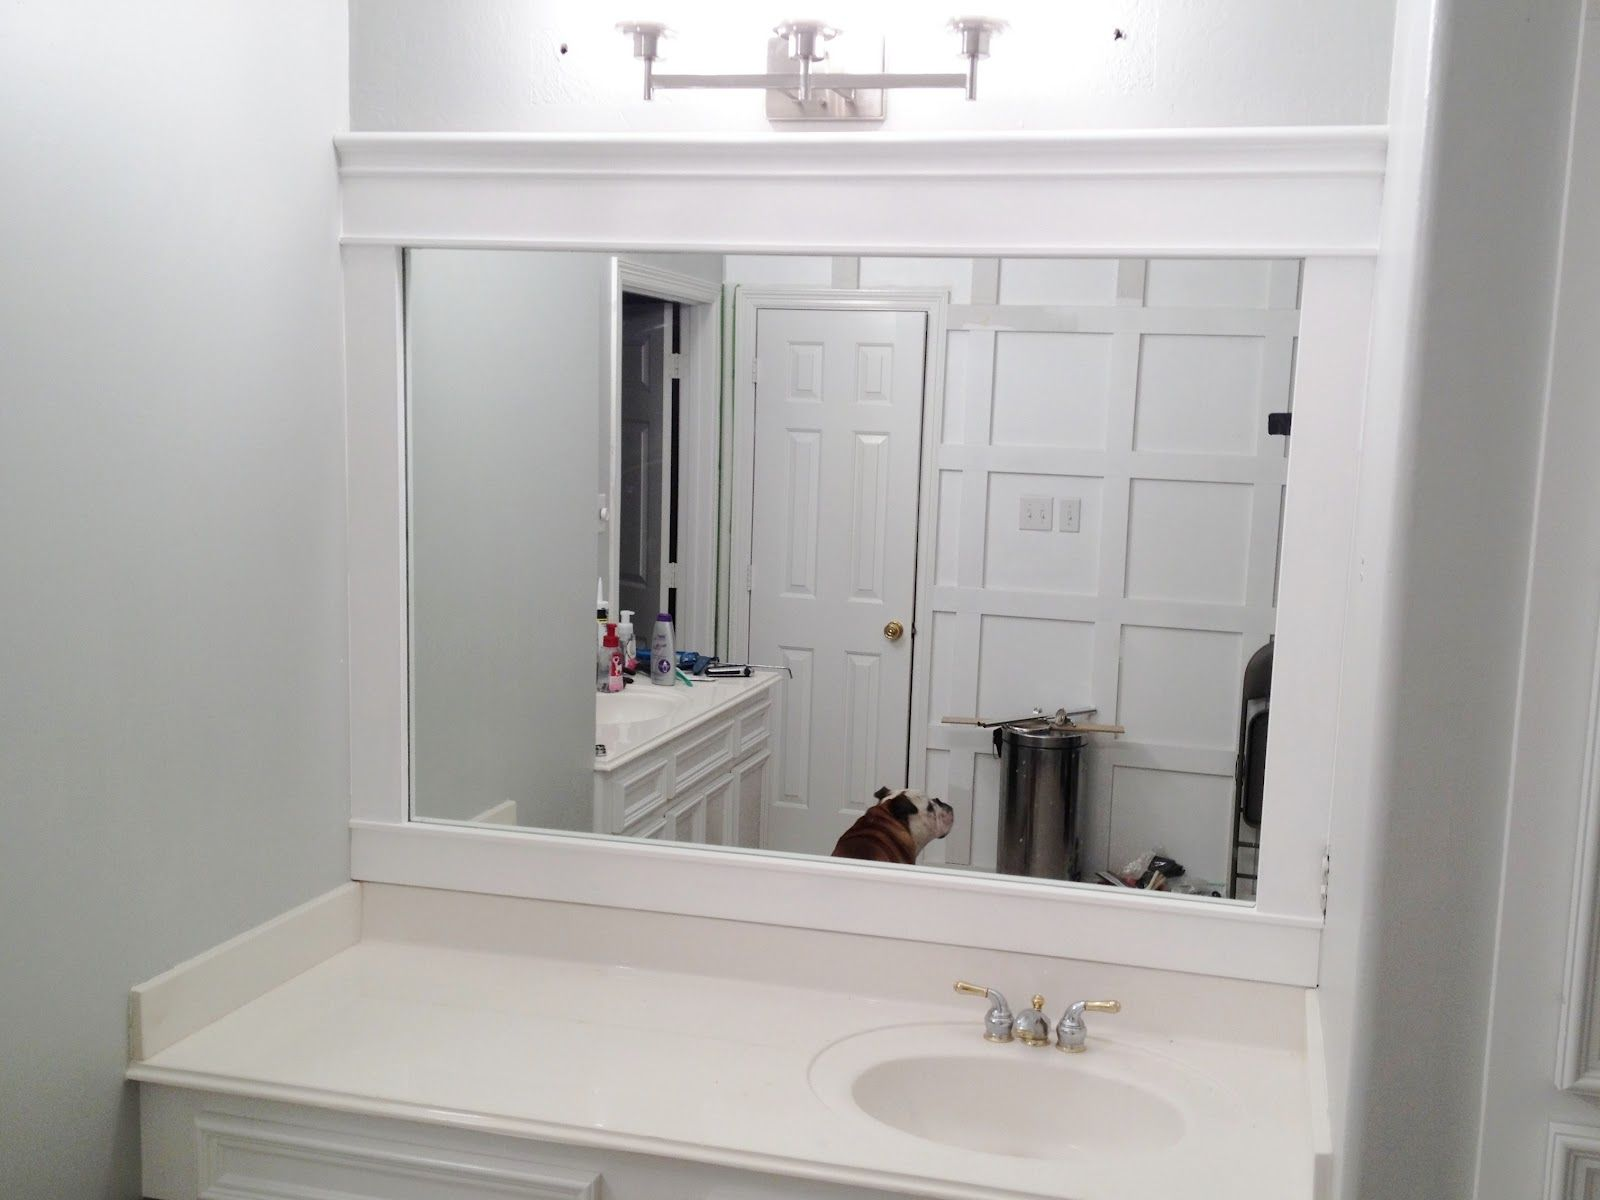 White Frame Bathroom Mirror bathroom interior elegant white framed wall mirror over marble